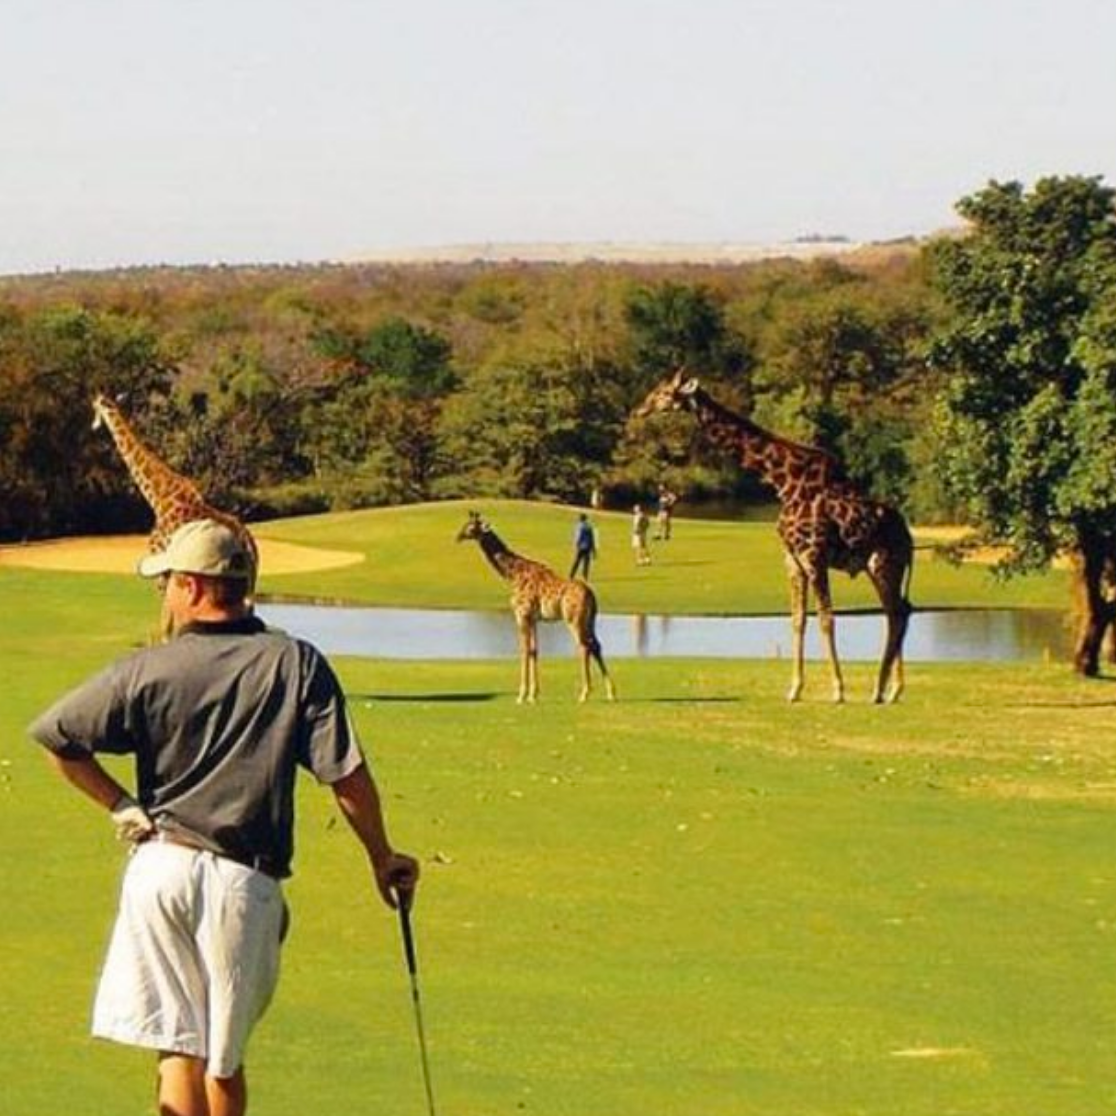 GOLF FALL 2019 - SOUTH AFRICA